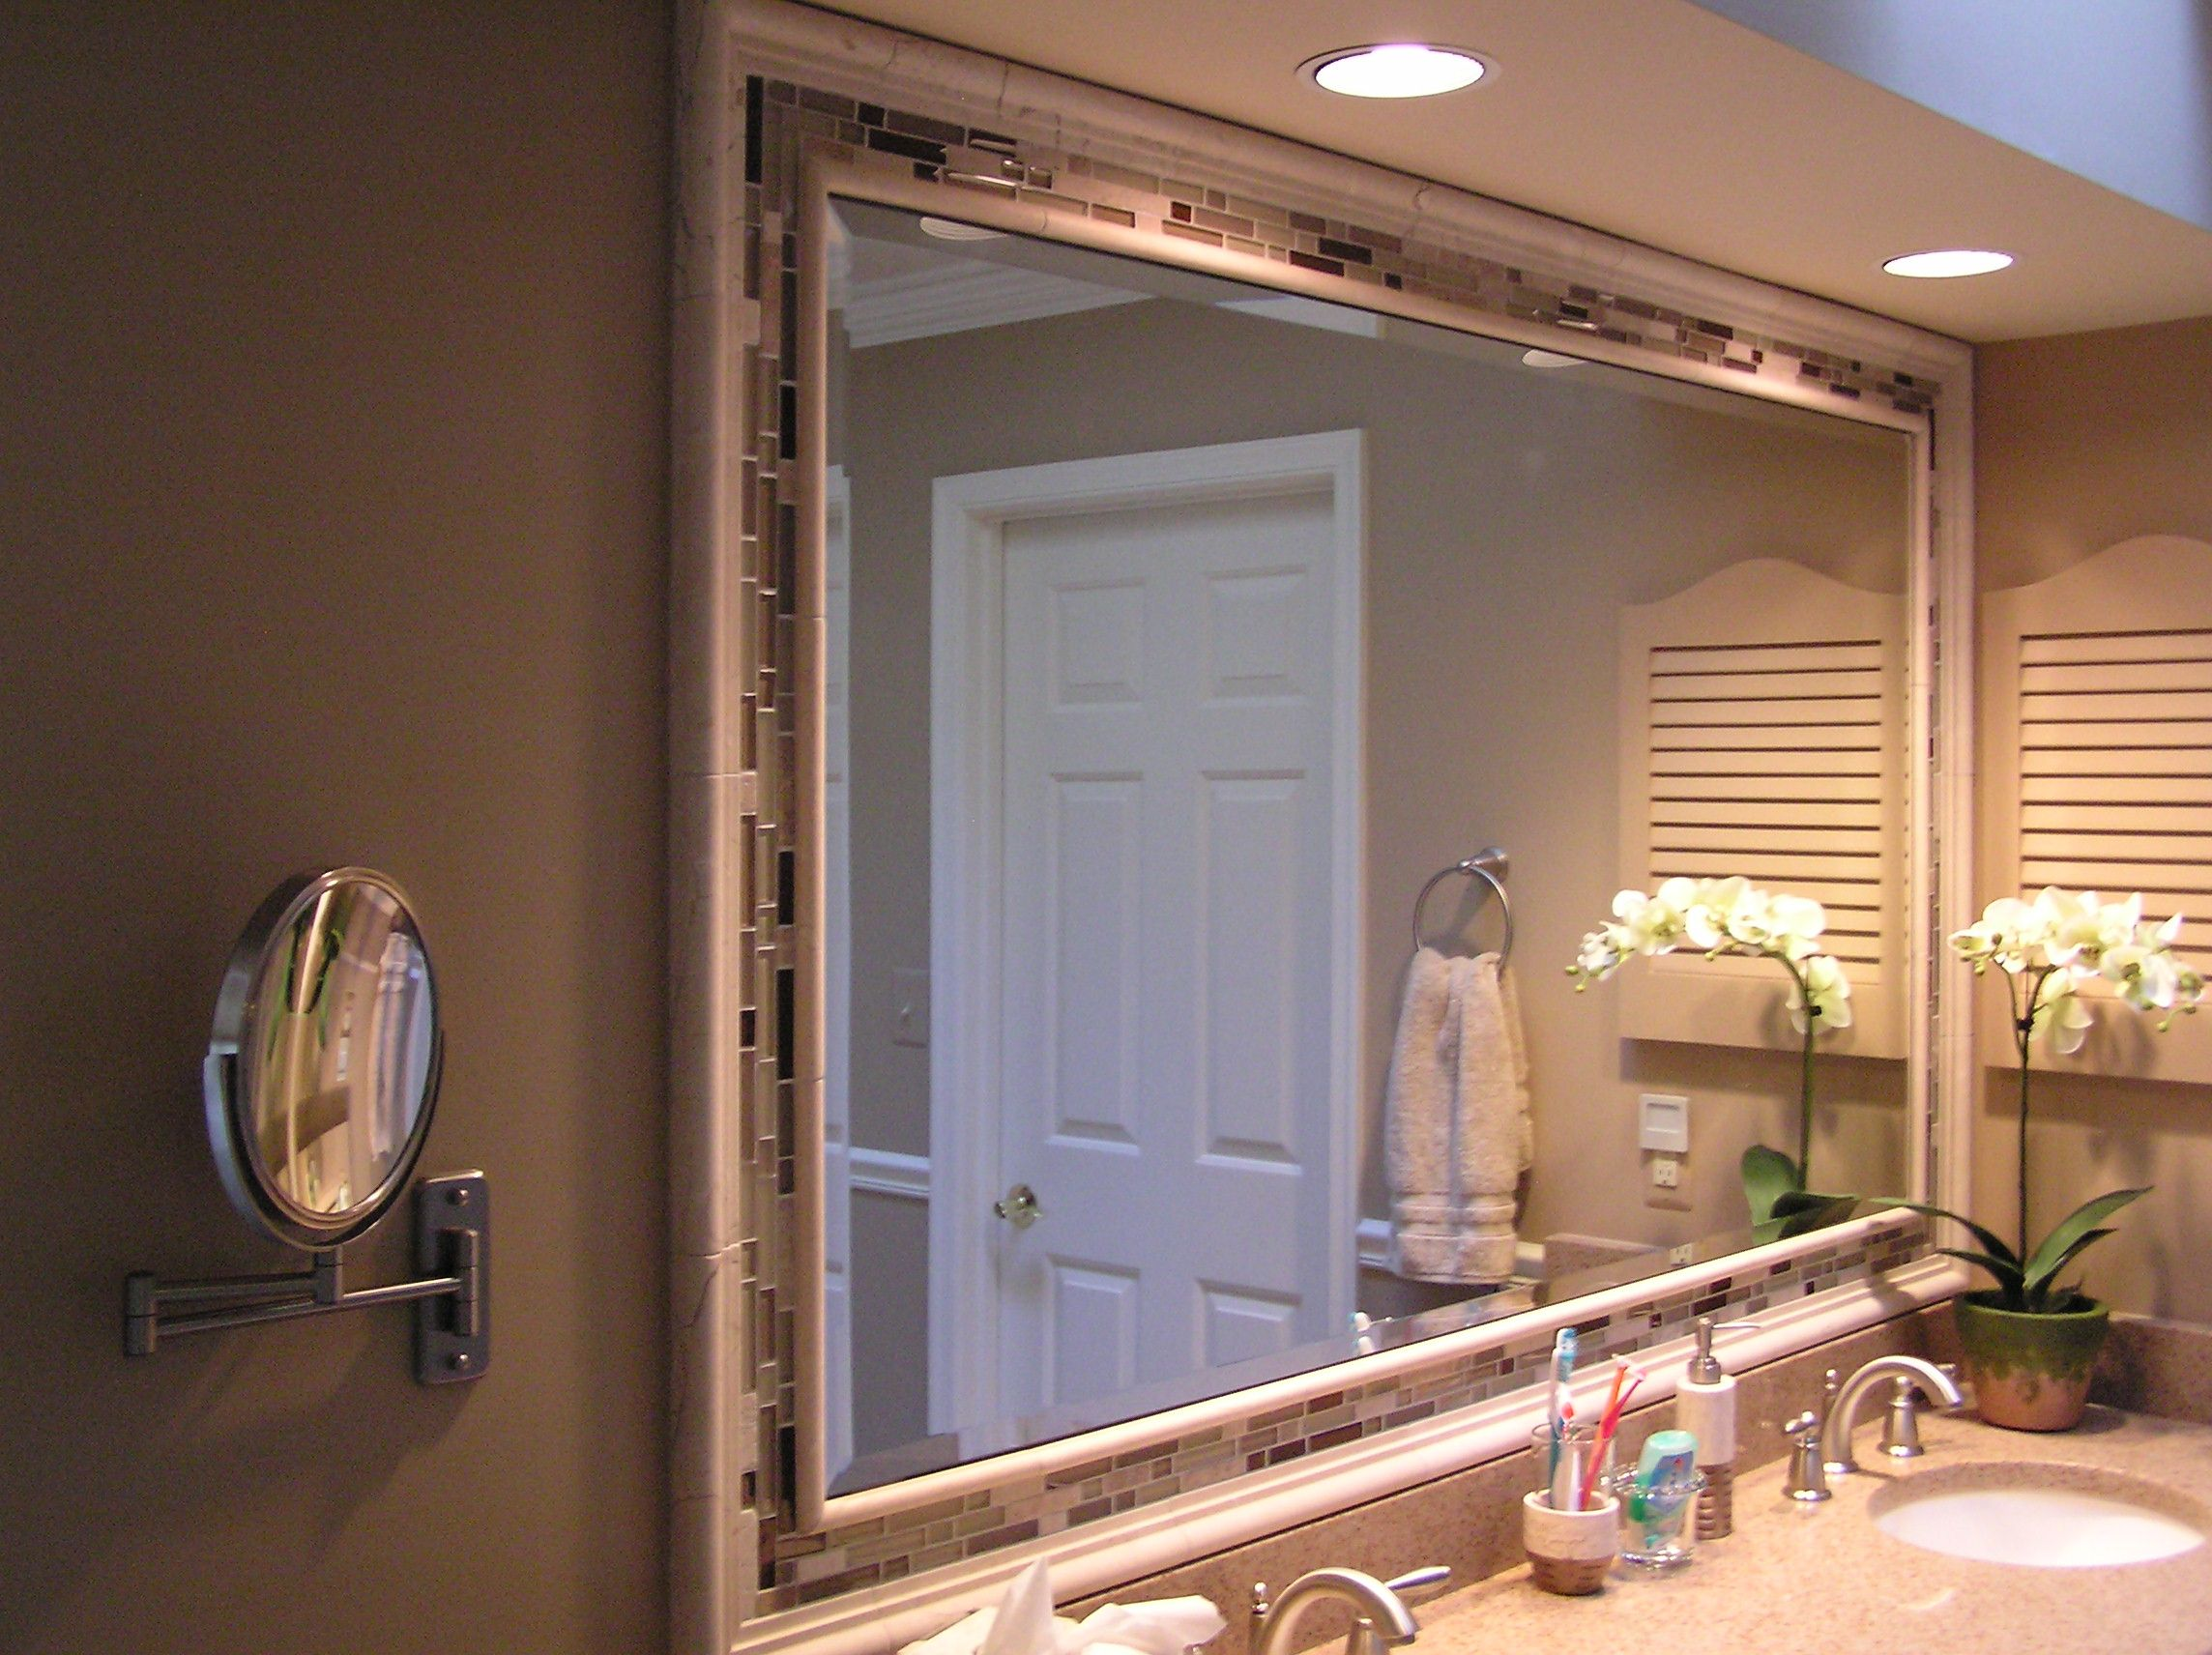 Beautiful DIY Vanity Mirror Ideas to Consider for Your Home